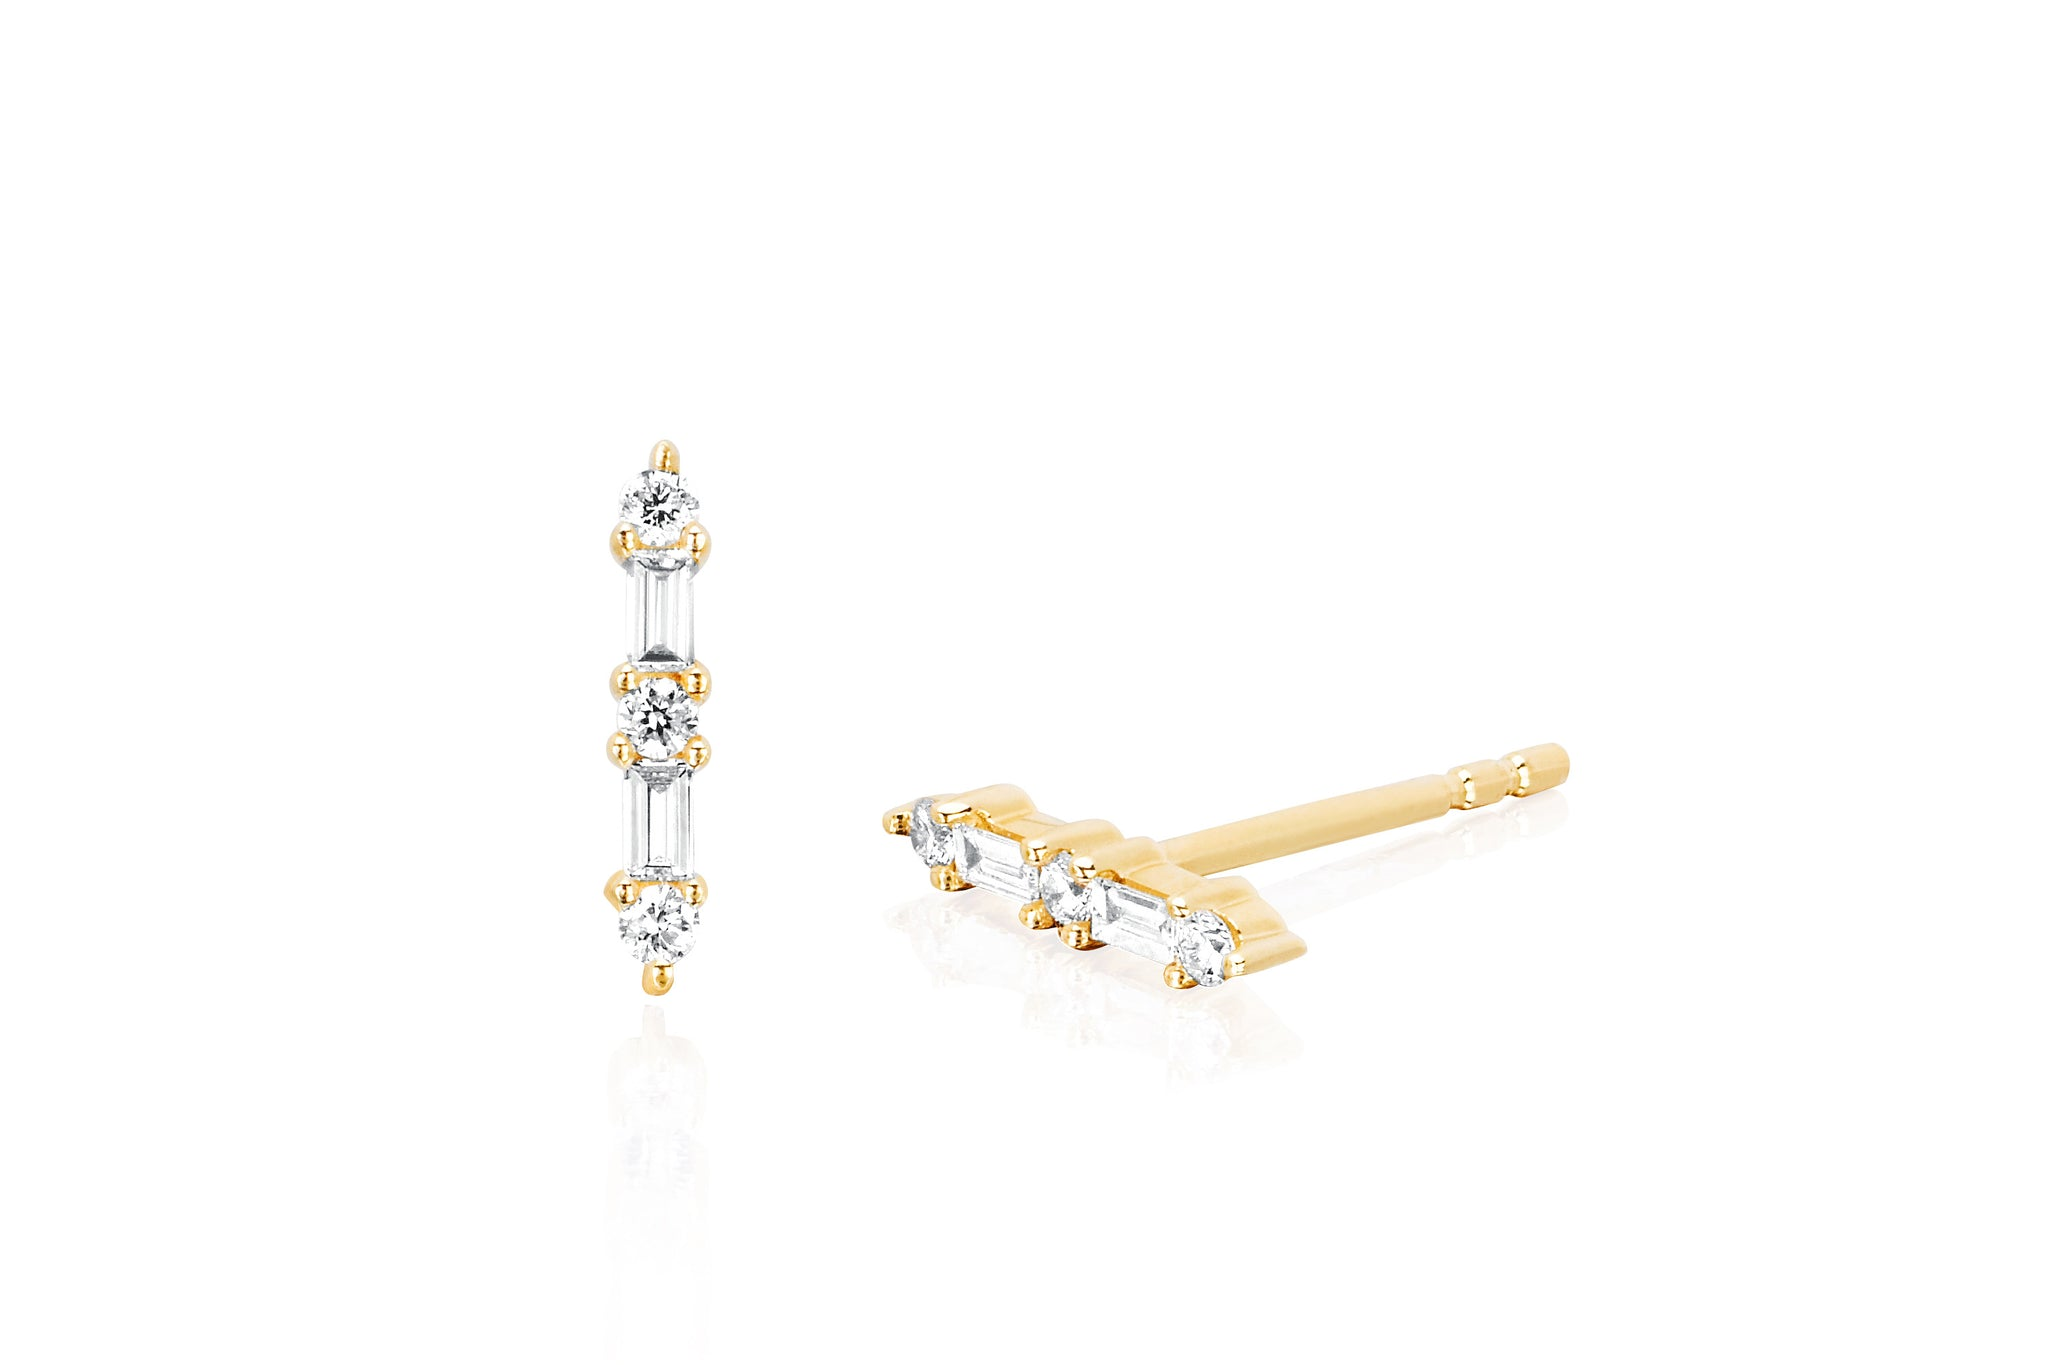 x wg baguette ef earrings diamondbaguette earring products stud diamond